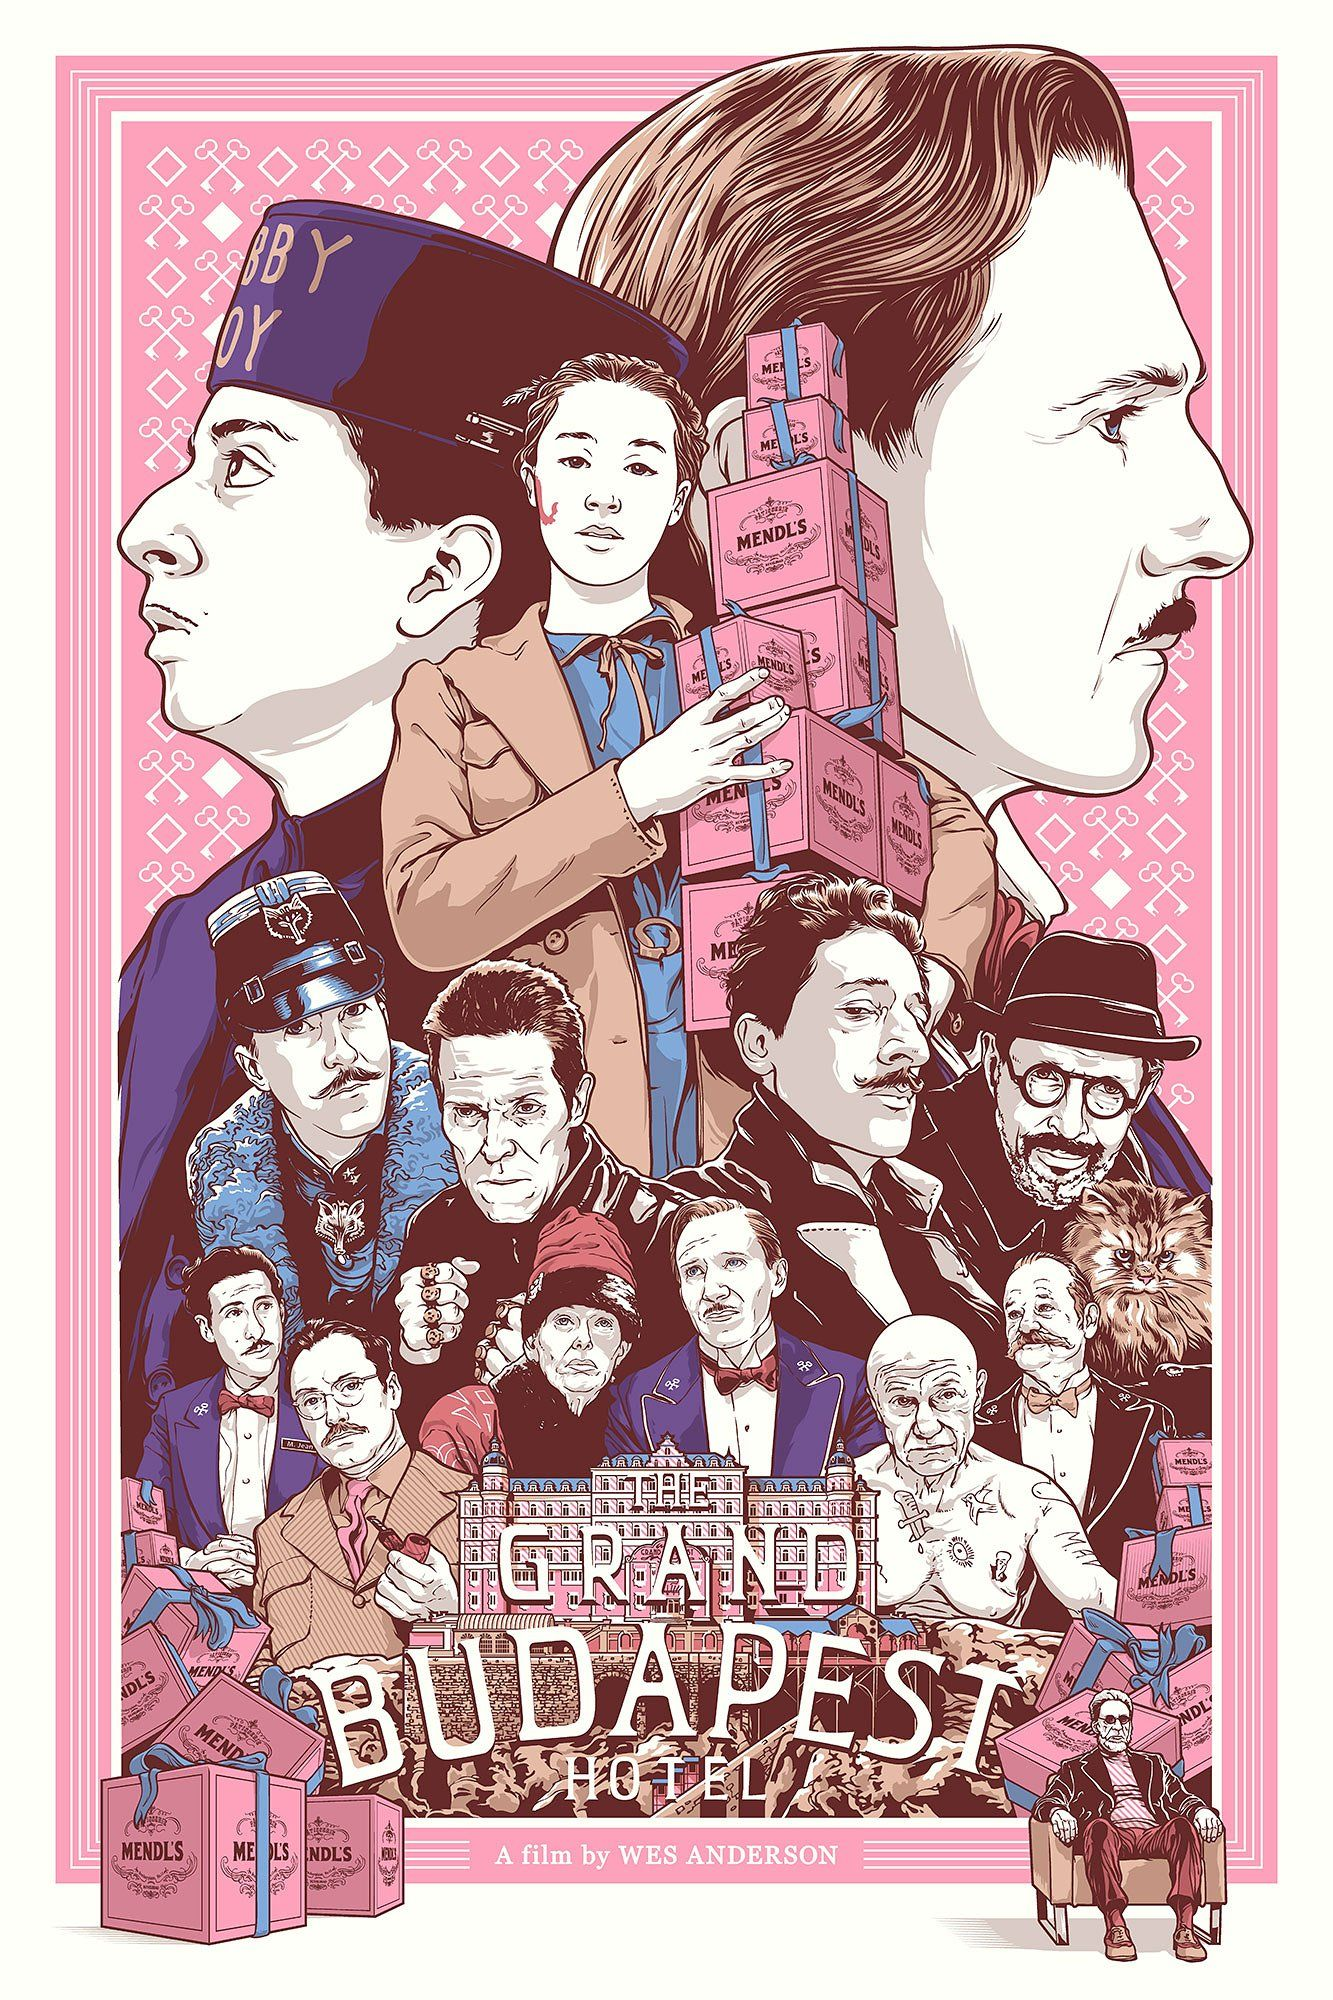 Joshua Budich The Grand Budapest Hotel Wes Anderson Movies Movie Posters Minimalist Grand Budapest Hotel Poster